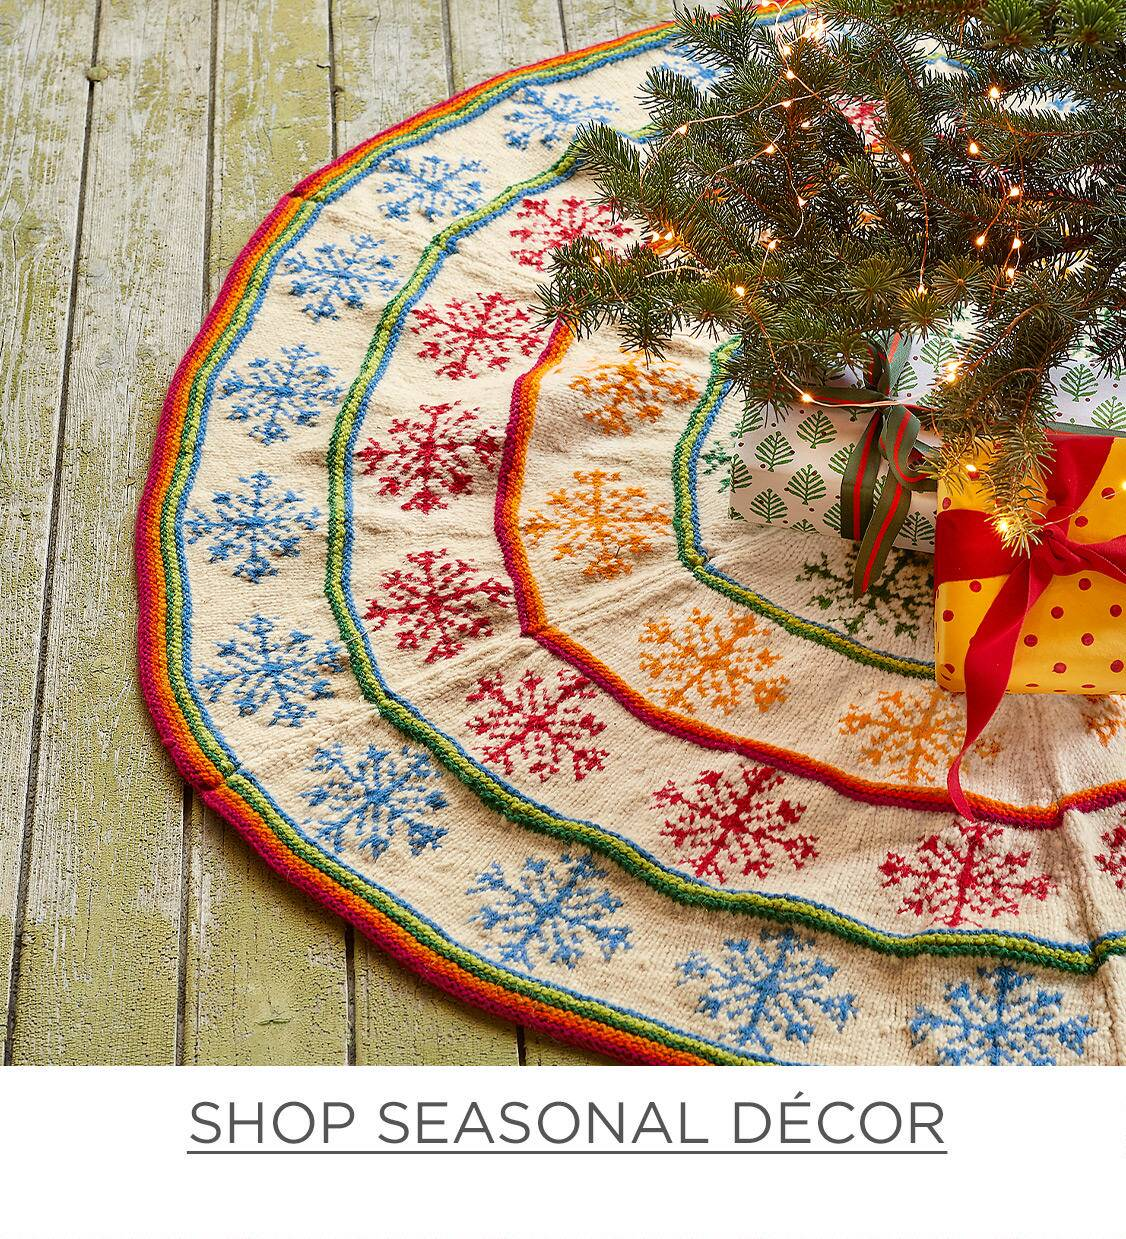 Shop Seasonal Decor